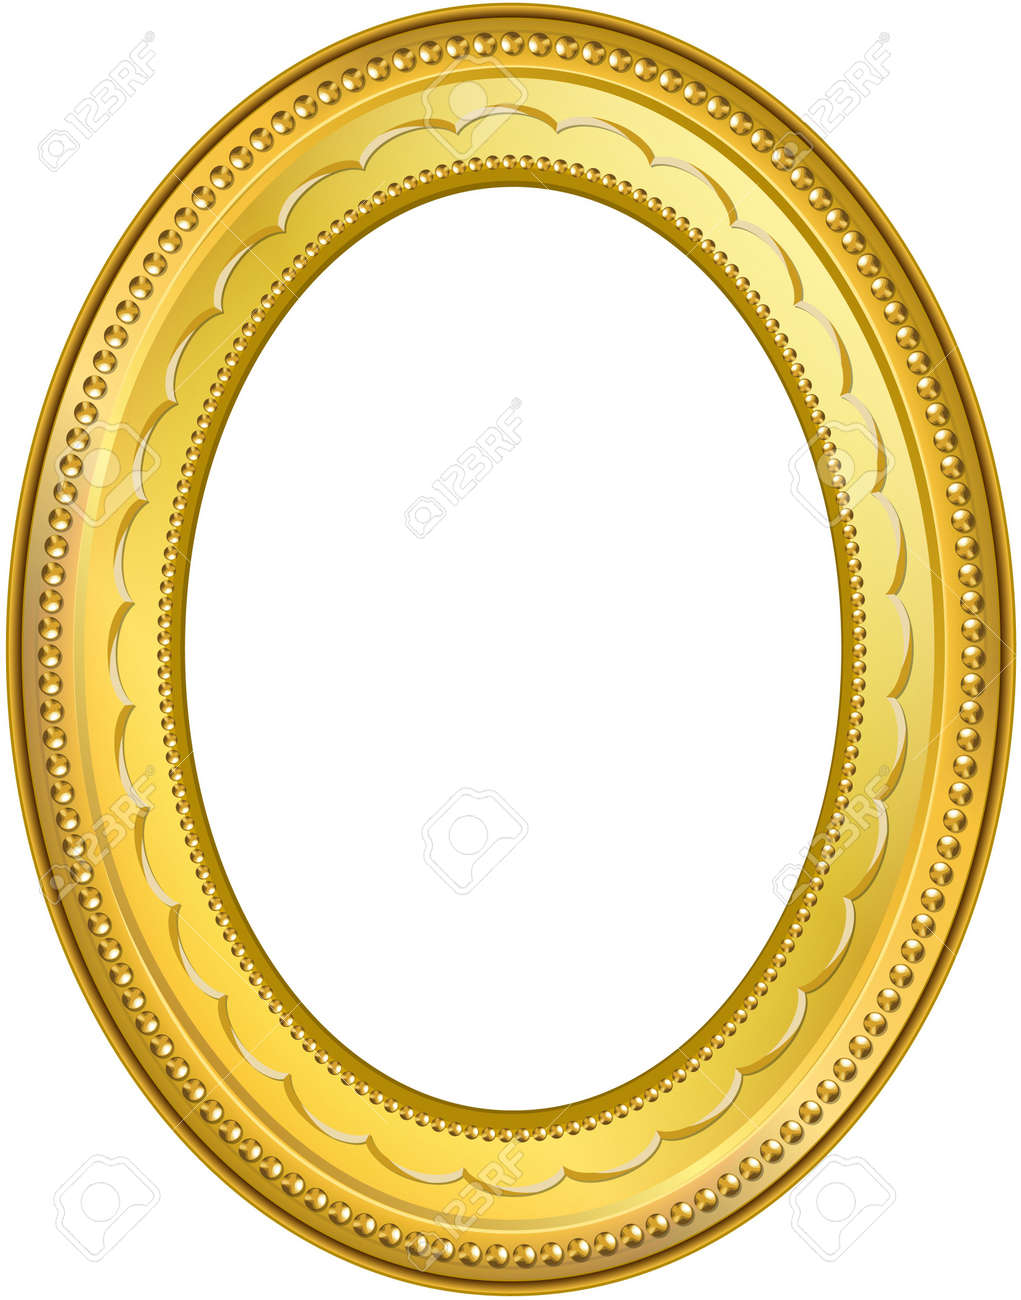 Golden frame with clipping paths. Digital illustration from scratch. Blends, gradient mesh. Stock Illustration - 530682